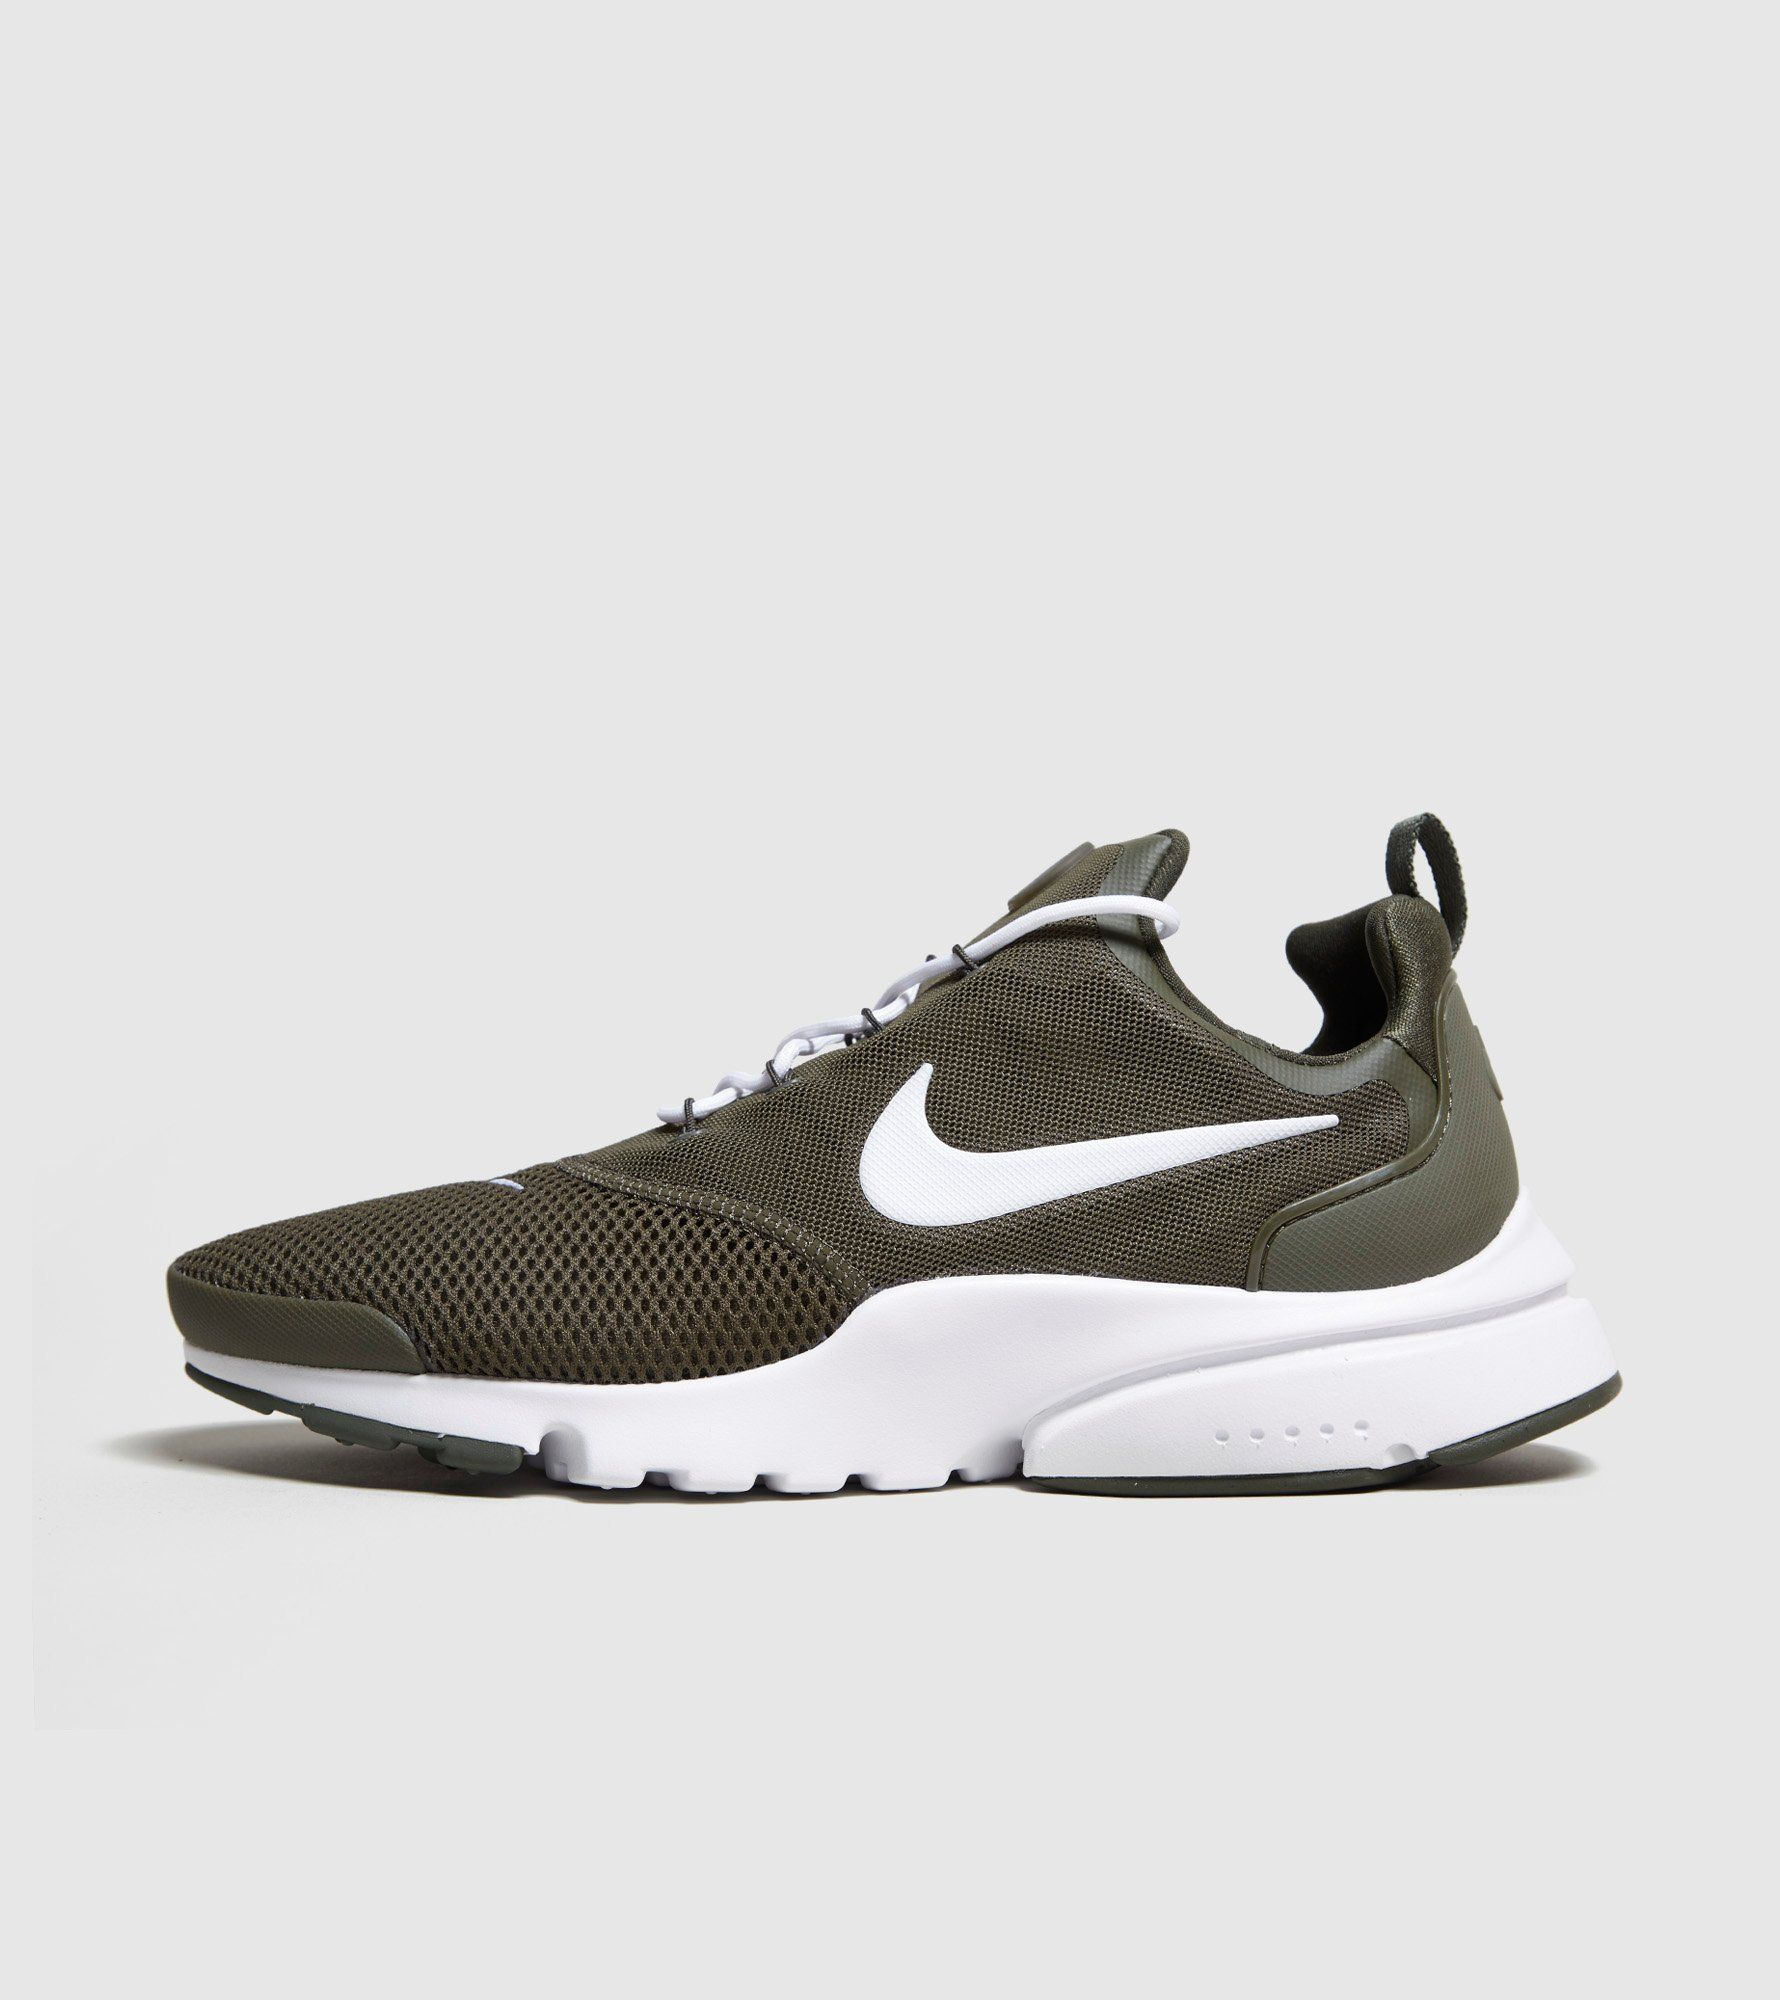 new concept b21ba ca569 Internationalist Trainers Prism Pink White Sheen - Hers trainers Nike Air  Presto Fly ...